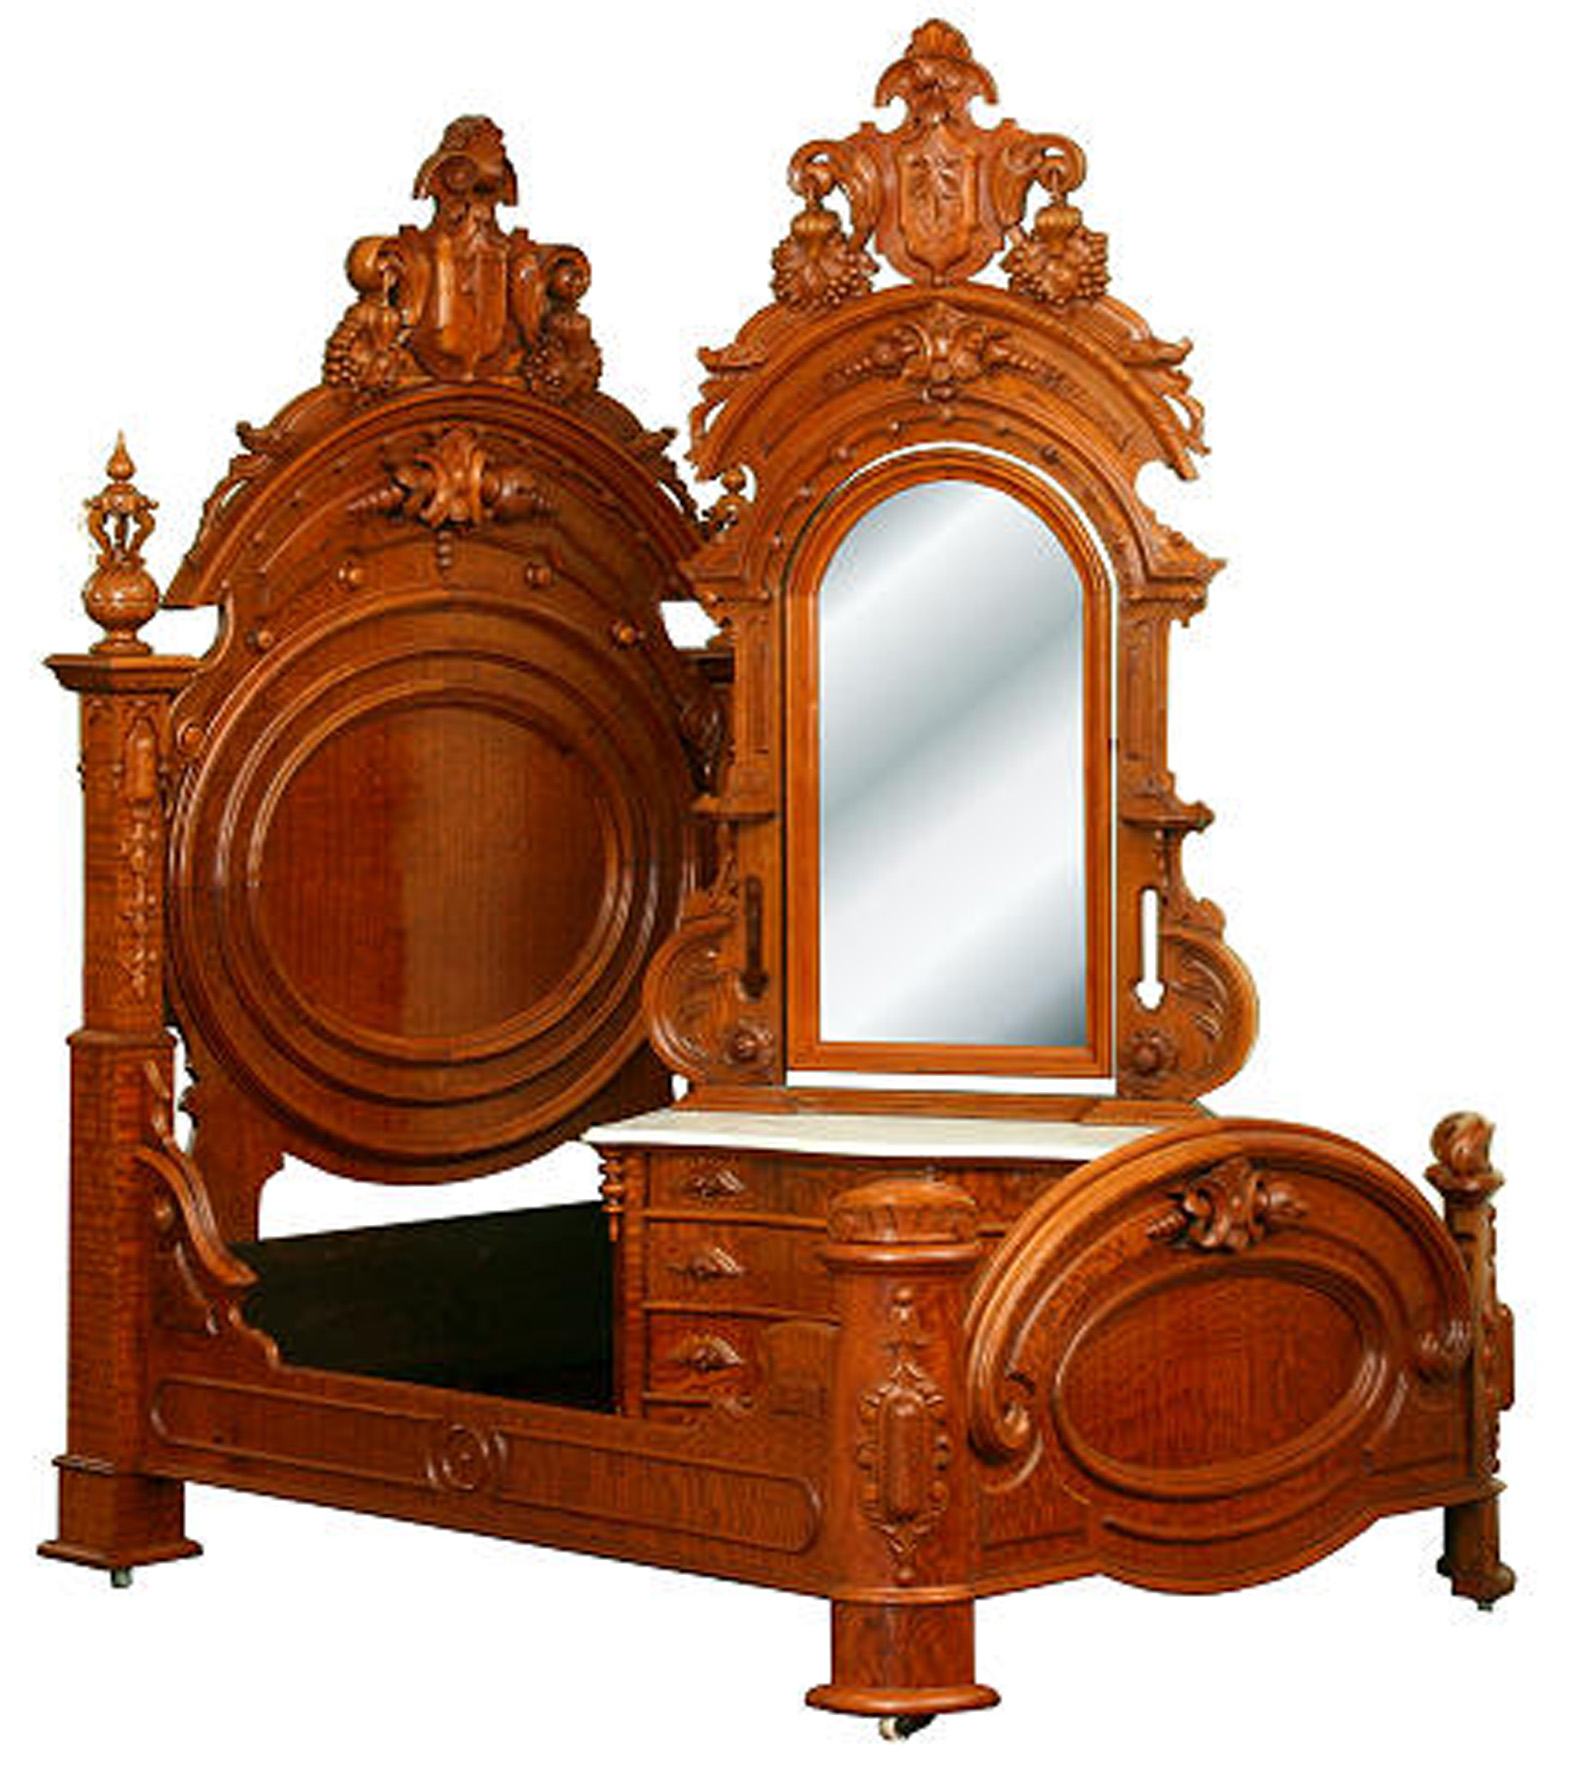 Attractive ... 1850s As A Counter Balance To The Flowery Rococo Revival, Renaissance  Revival Borrowed Elements From Just About Every Furniture Period Since The  1400s.